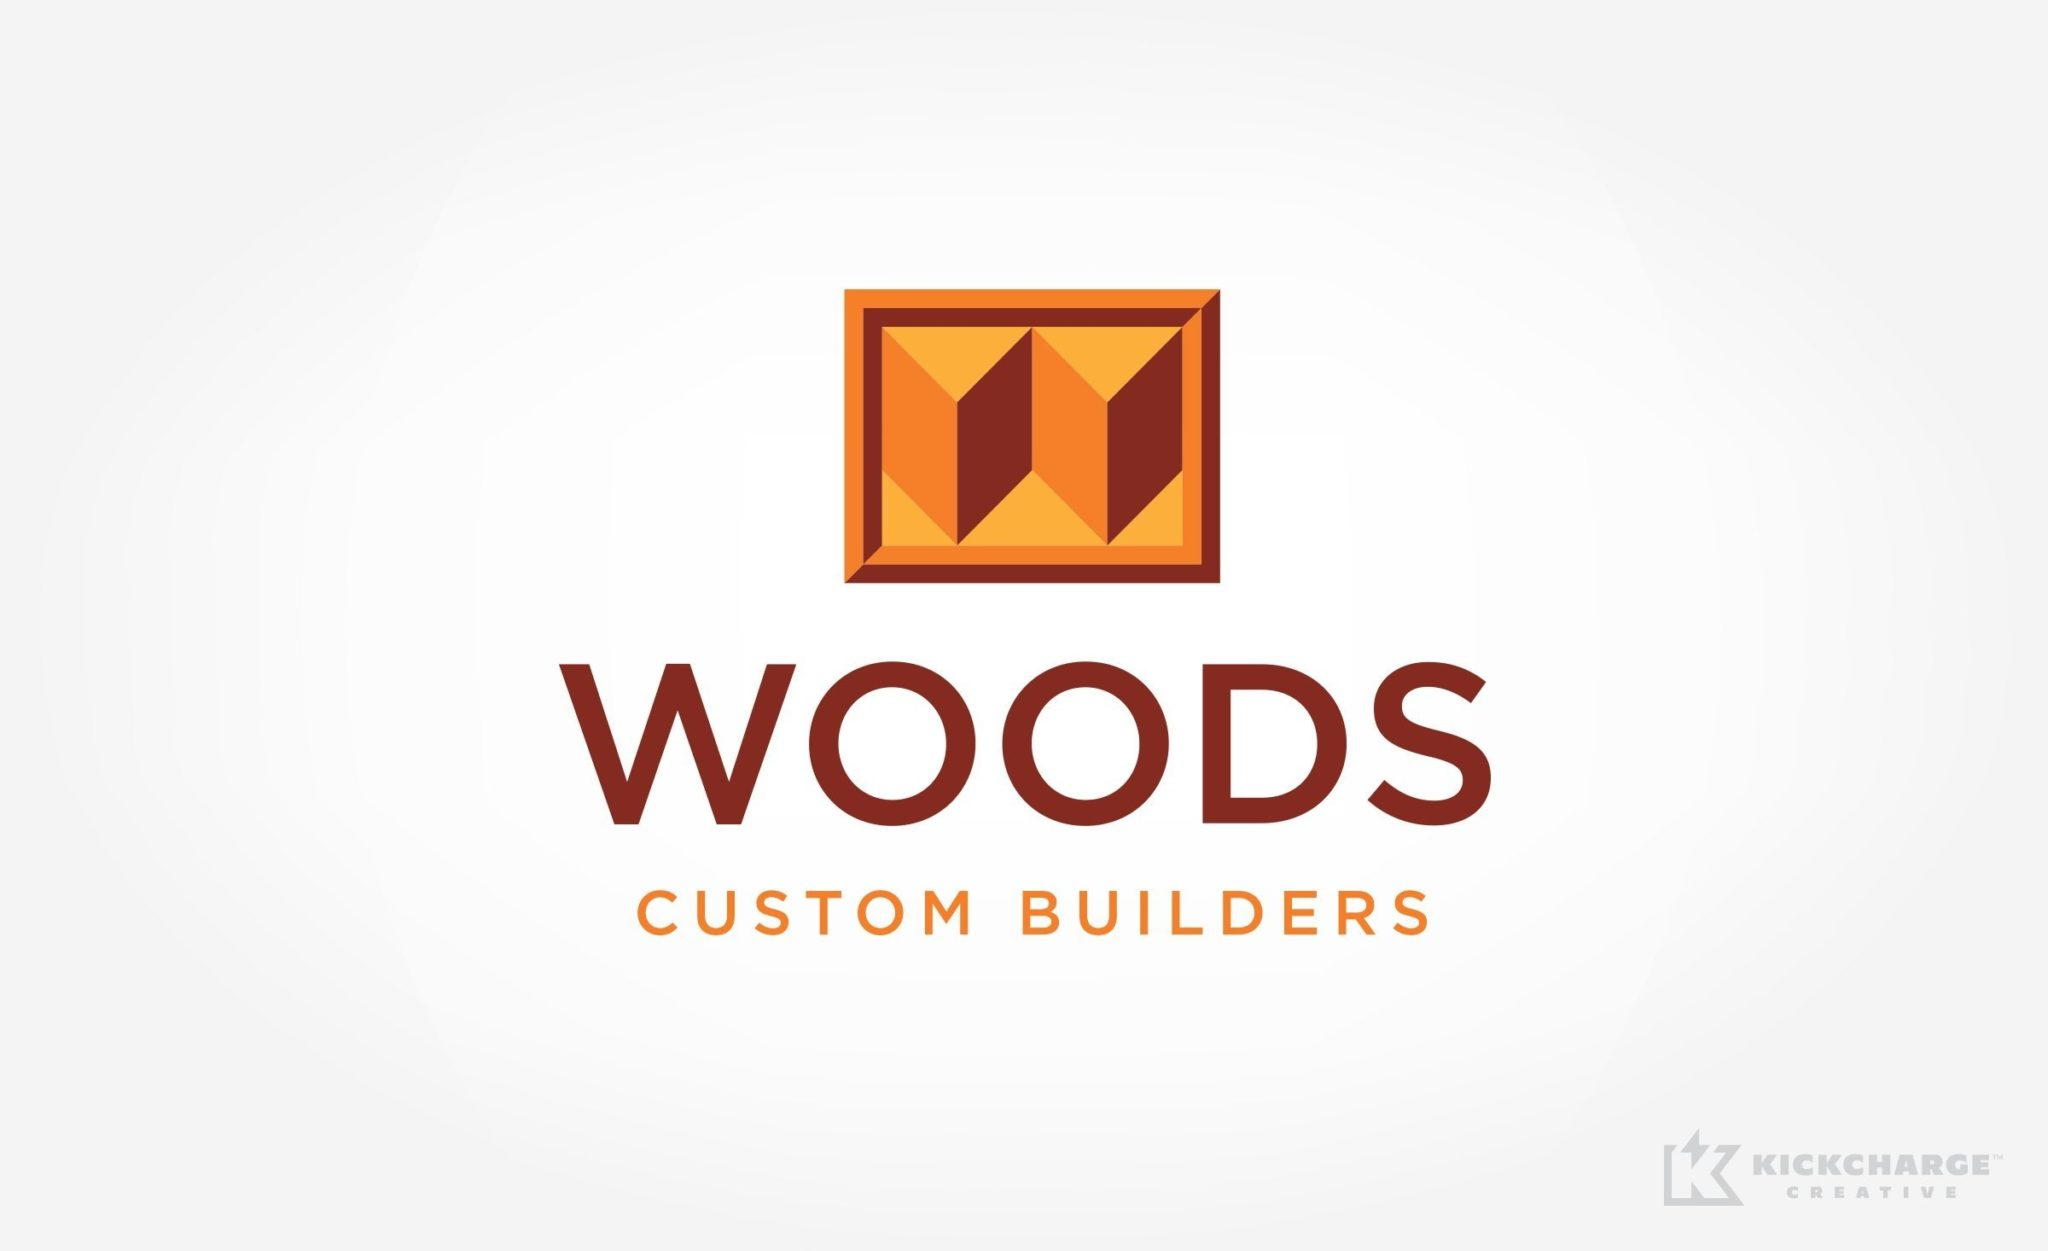 Woods Custom Builders